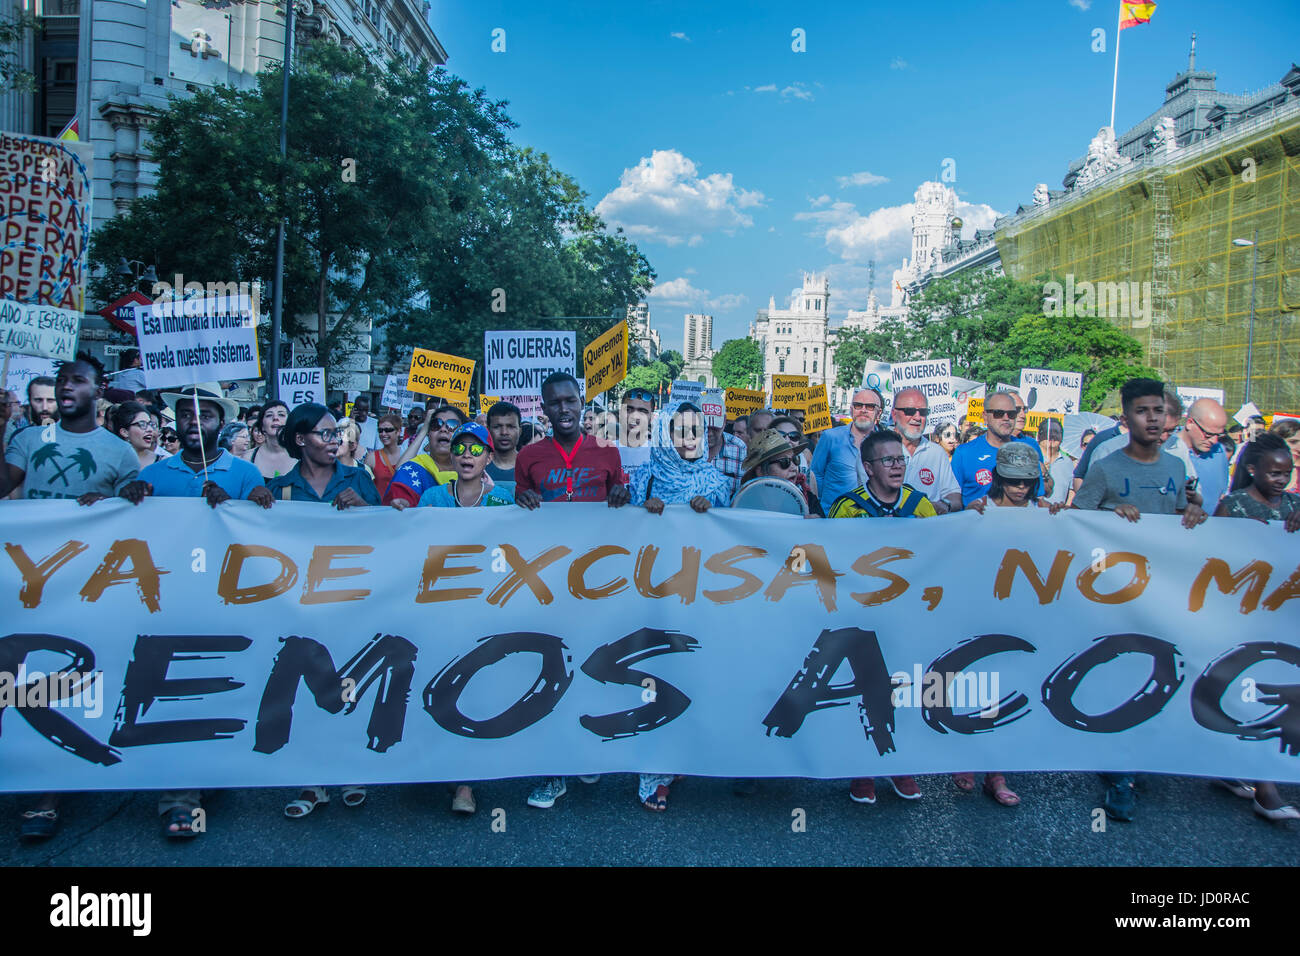 "Madrid, Spain. 17th June, 2017. demonstration in favor of the refugees ""queremos acoger"" in Madrid, spain Credit: Stock Photo"